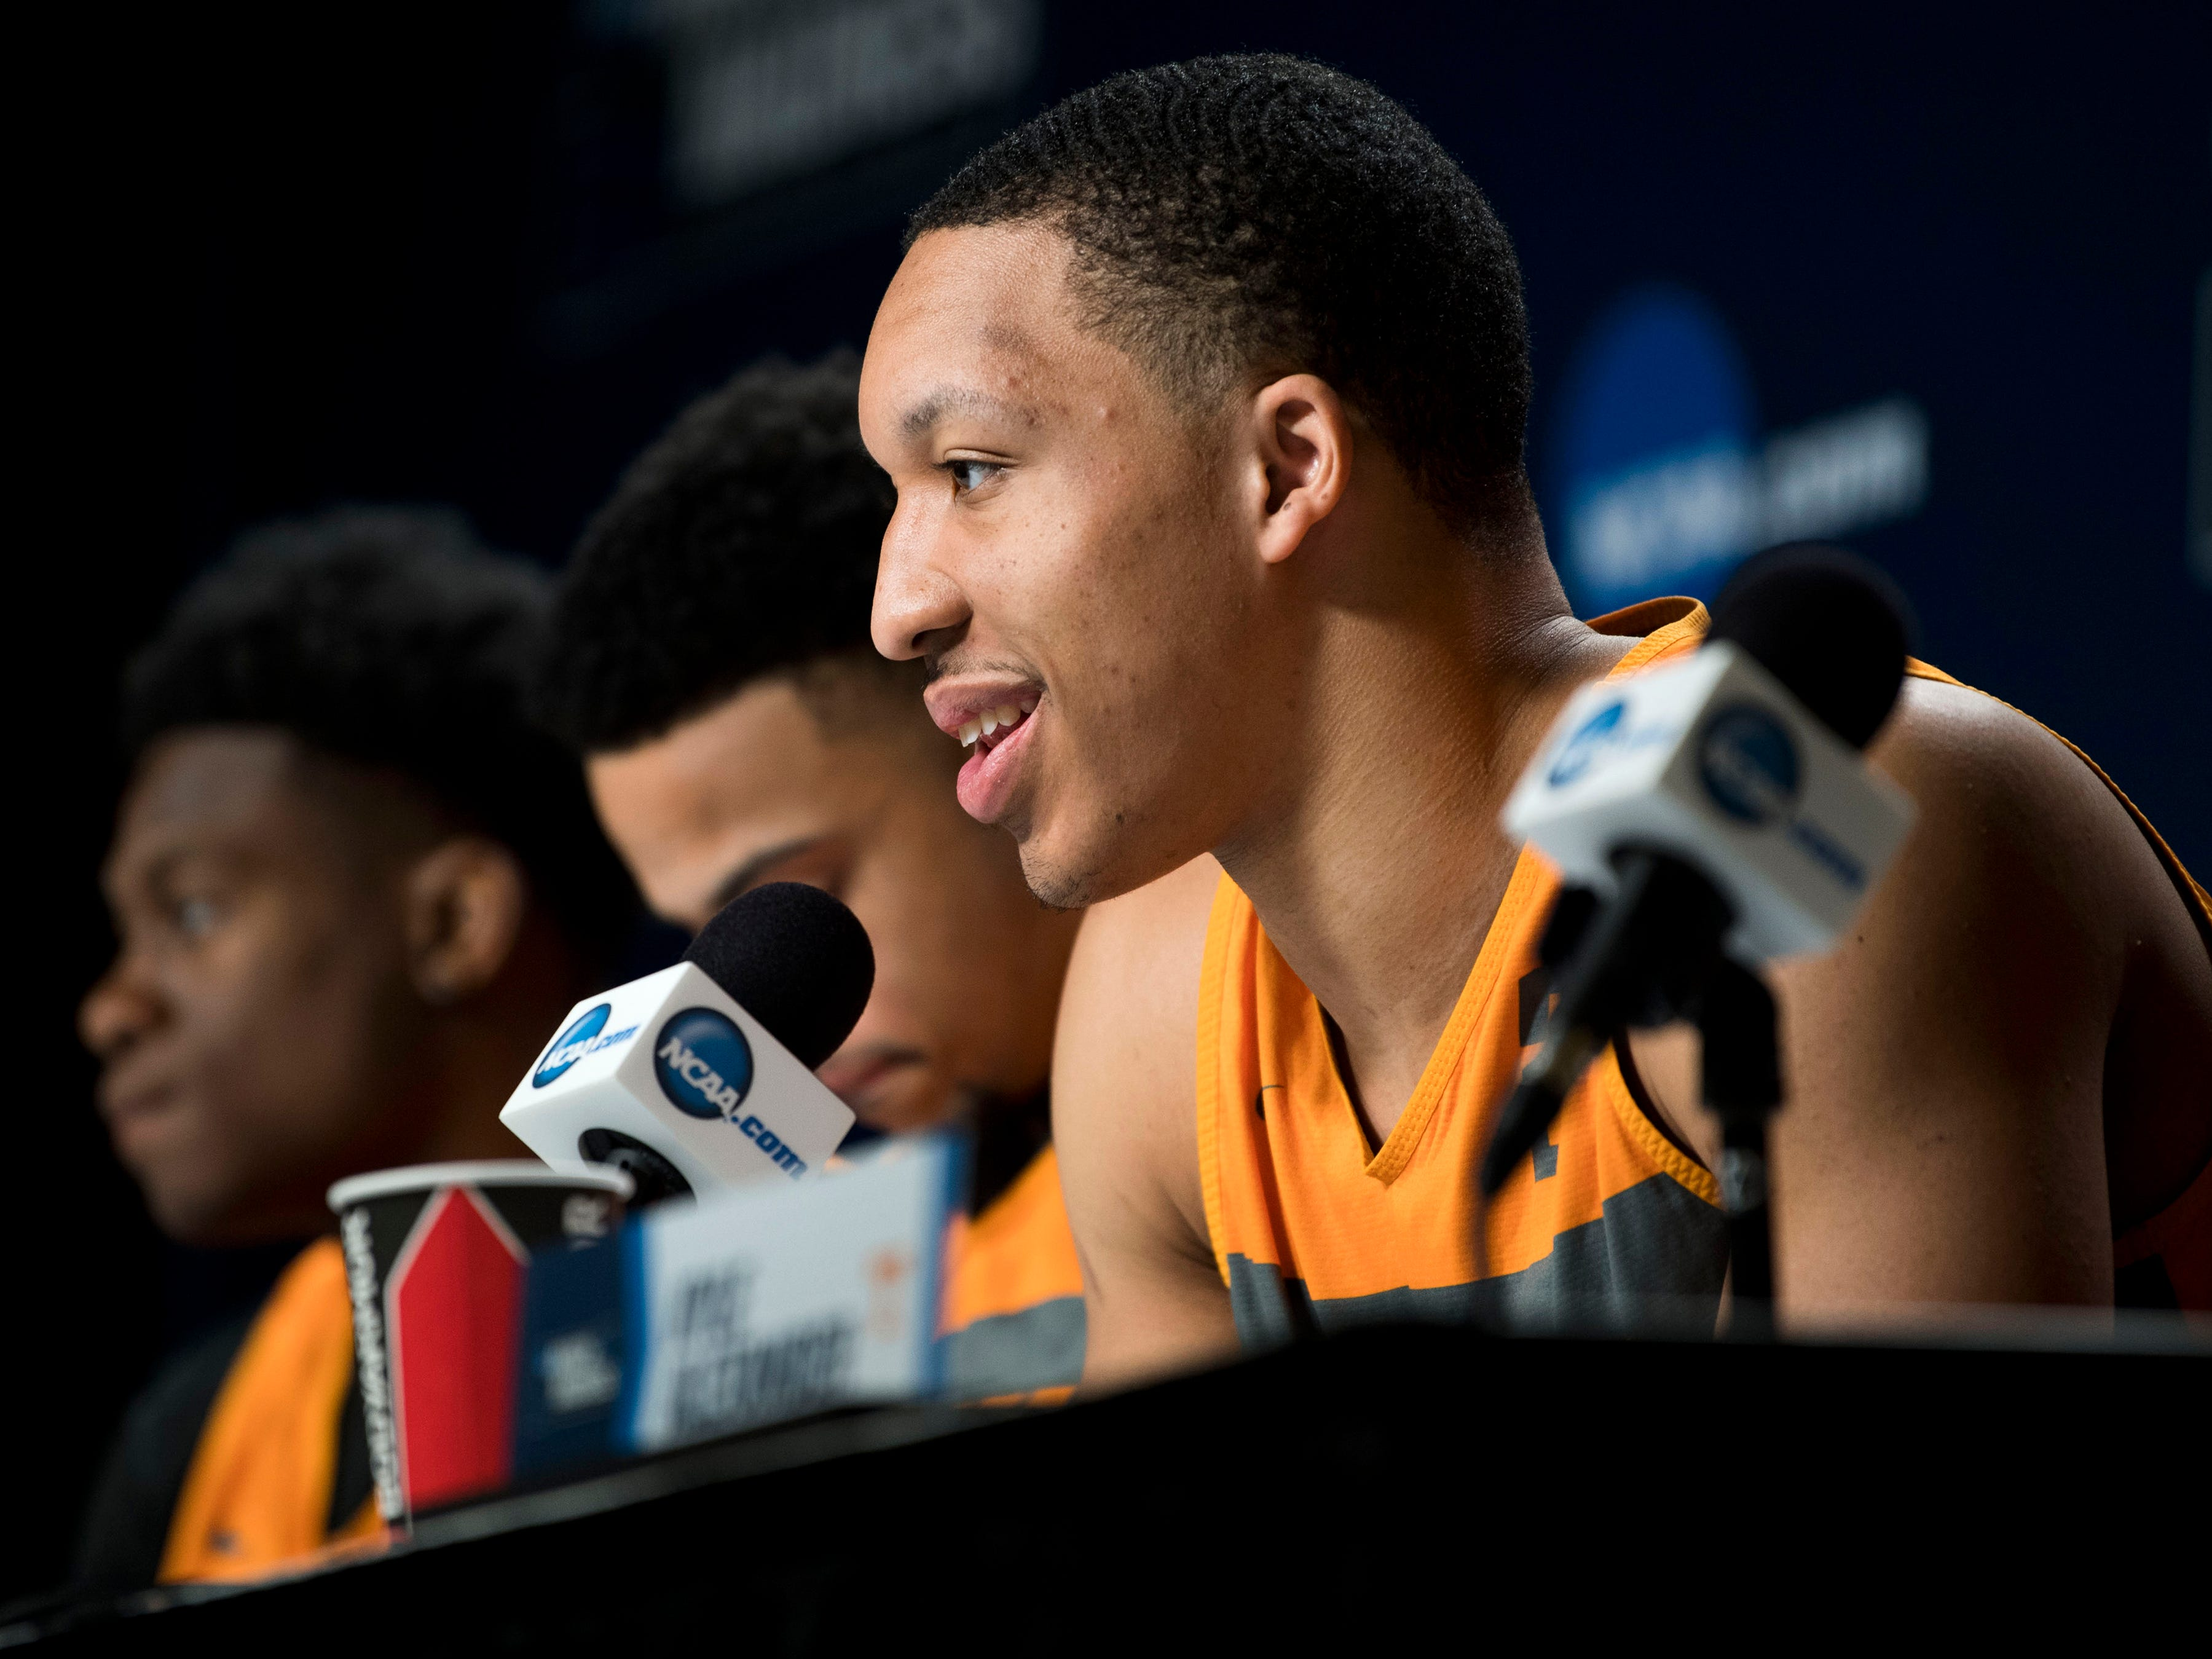 Tennessee forward Grant Williams (2) speaks at a press conference on Saturday, March 23, 2019, before the Tennessee Volunteers and Iowa Hawkeyes compete against one another in the second round of the NCAA Tournament held at Nationwide Arena in Columbus, Ohio on Sunday, March 24, 2019.